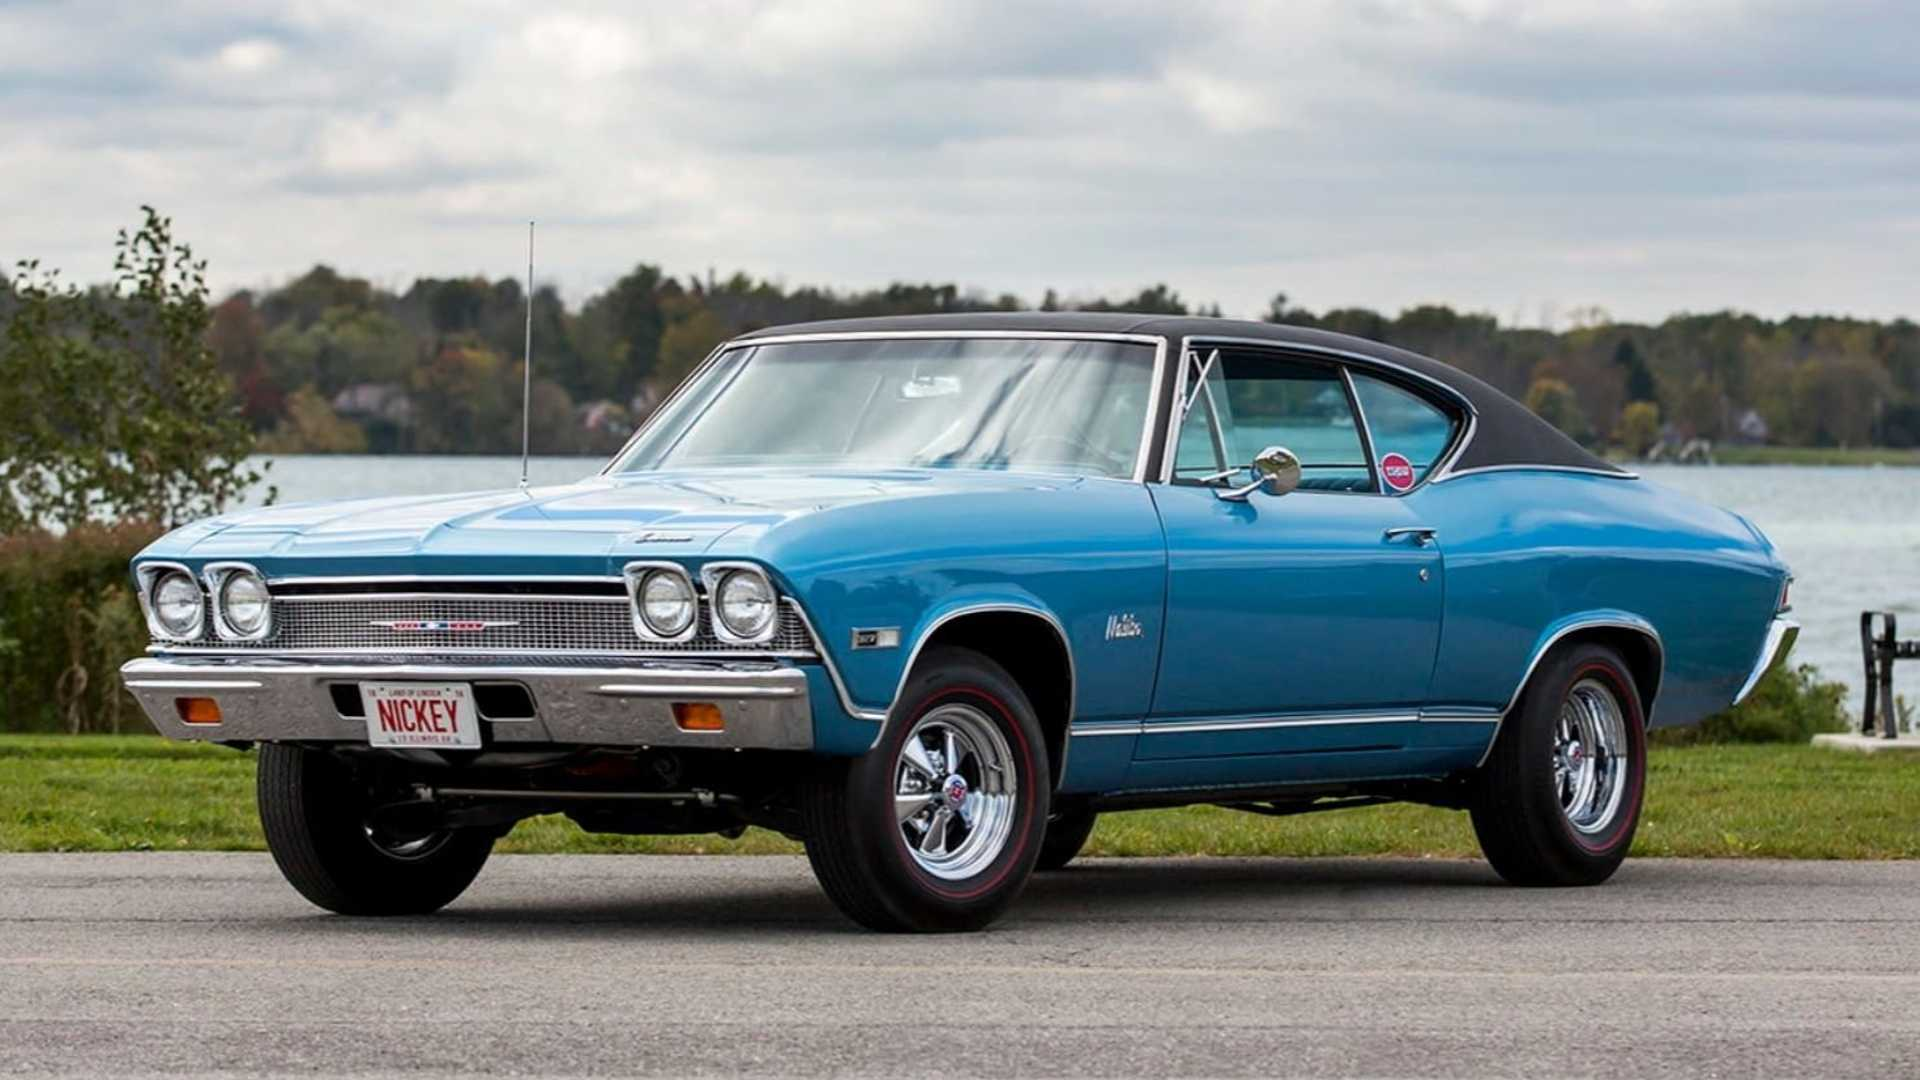 Snag This 1968 Chevelle Malibu Sport Coupe With Nickey Upgrades | Motorious.com